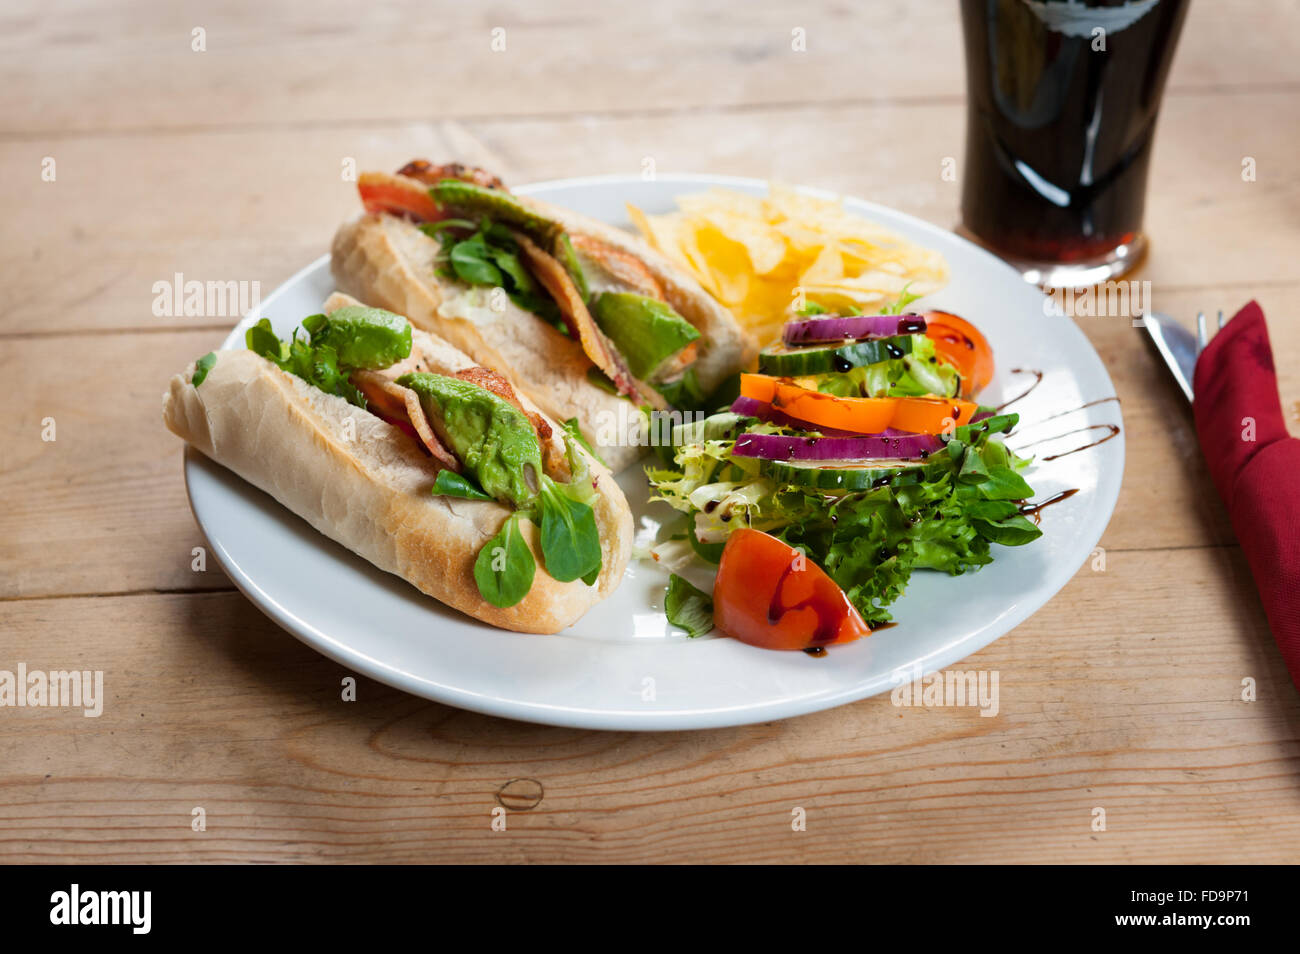 A Bacon lettuce and tomato sandwich and salad on a plate on a wooden table in an English pub. - Stock Image